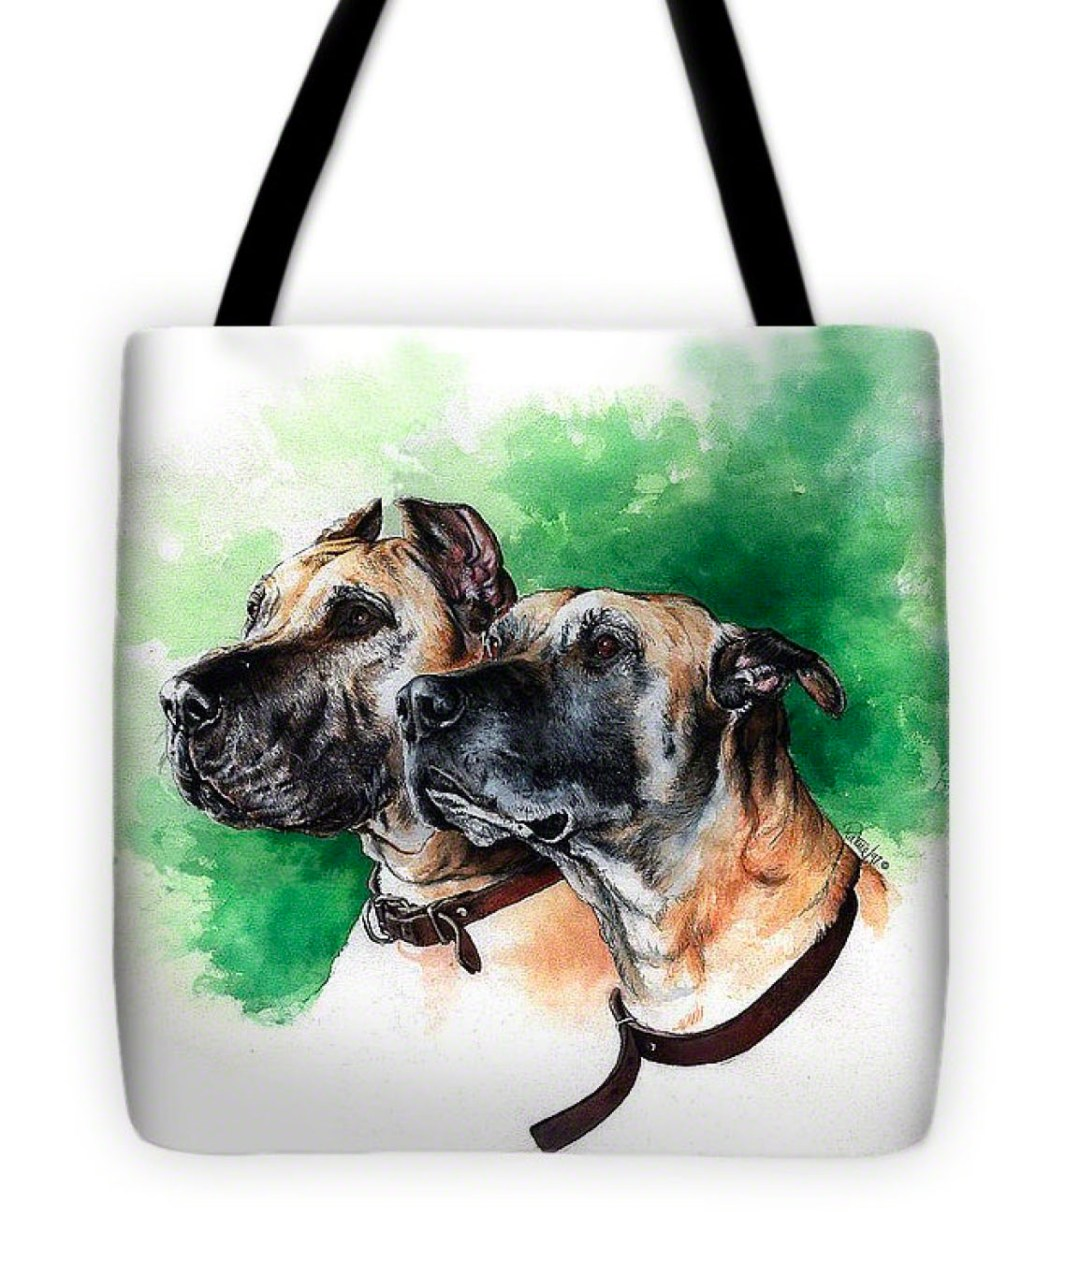 Great Dane Tote-Bag - Product by Patrice